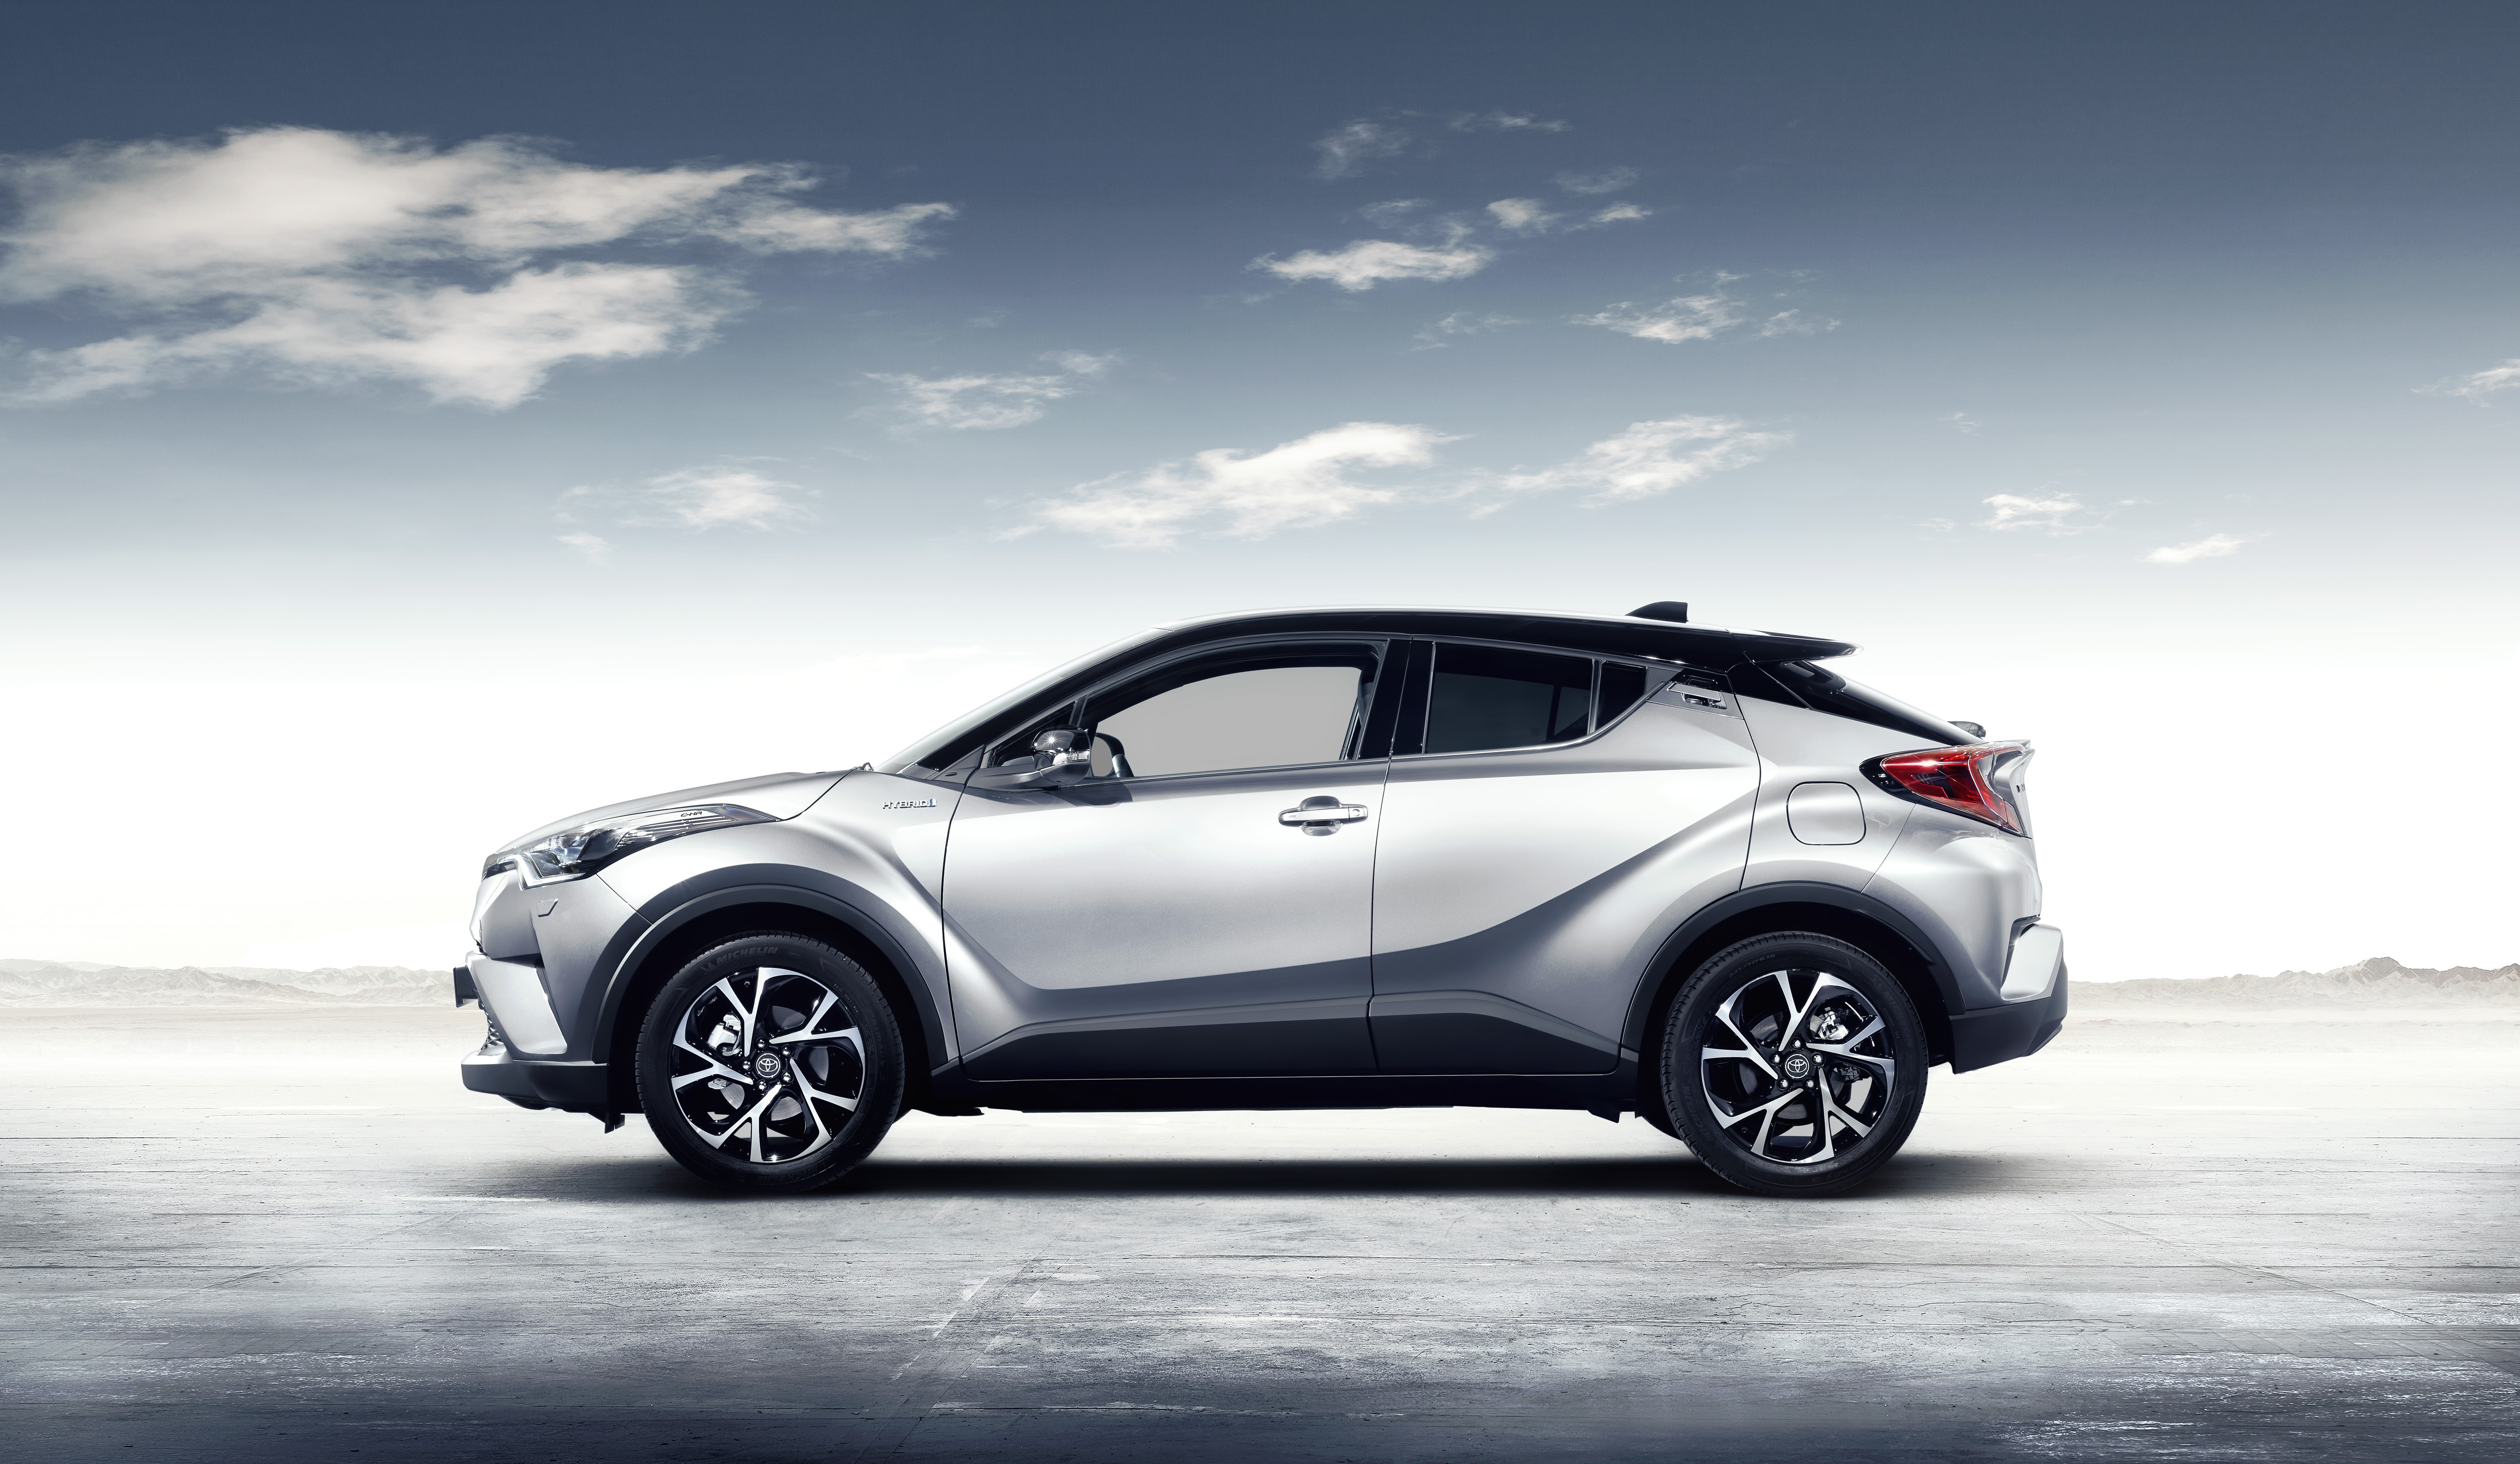 Toyota's bringing out this all-new C-HR